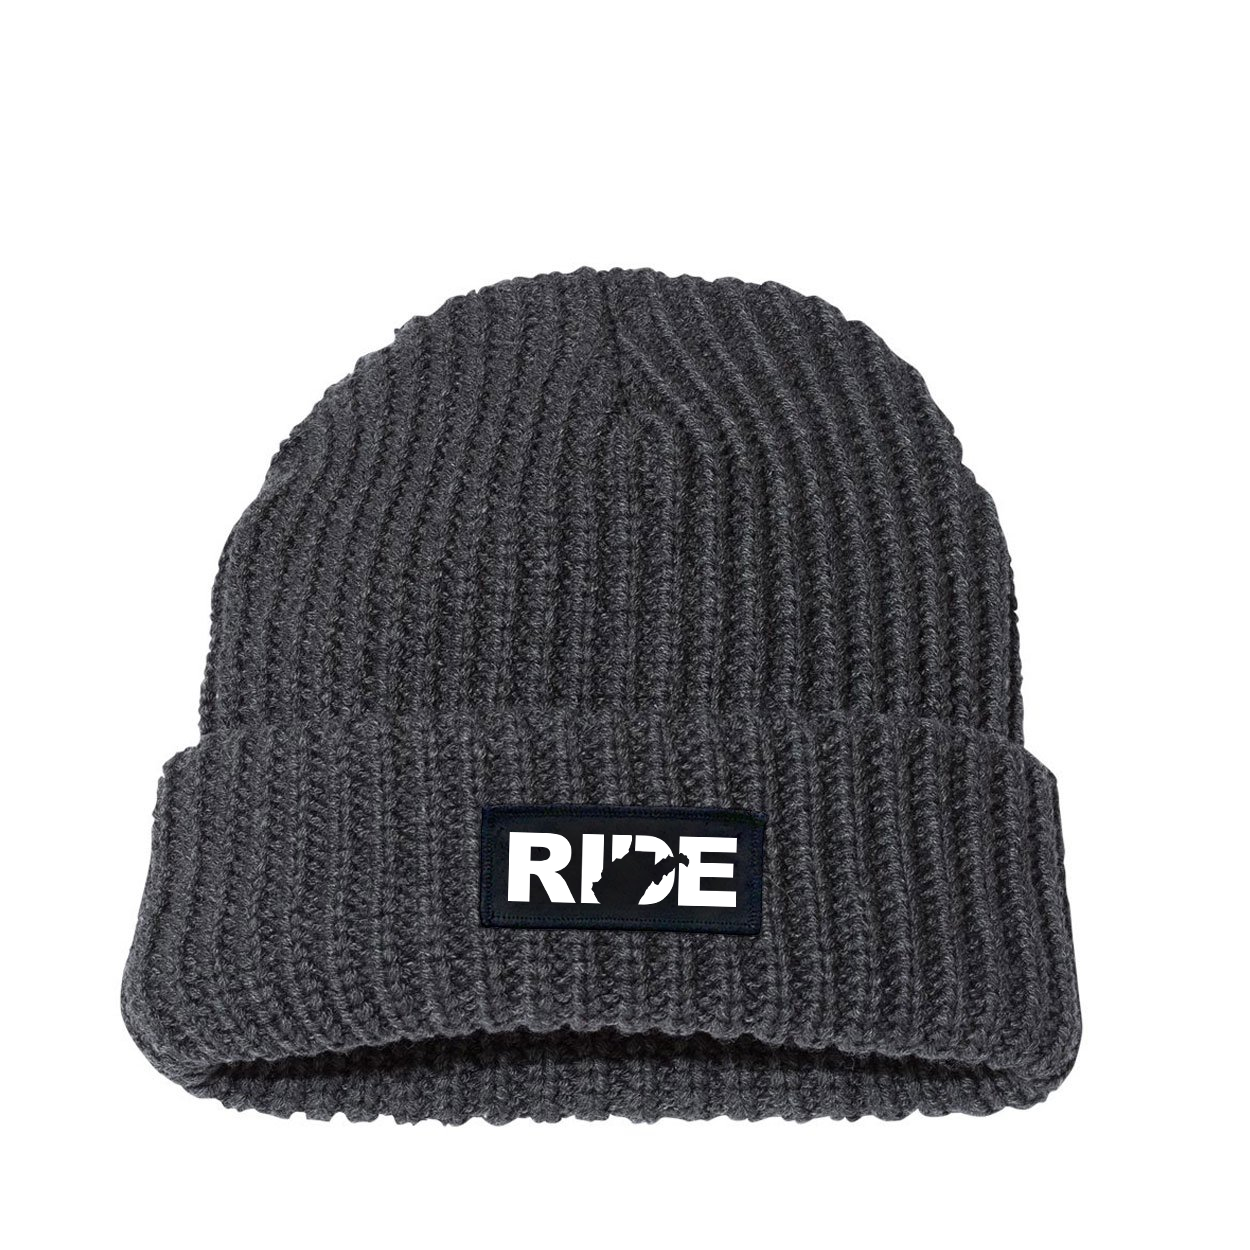 Ride West Virginia Night Out Woven Patch Roll Up Jumbo Chunky Knit Beanie Charcoal (White Logo)